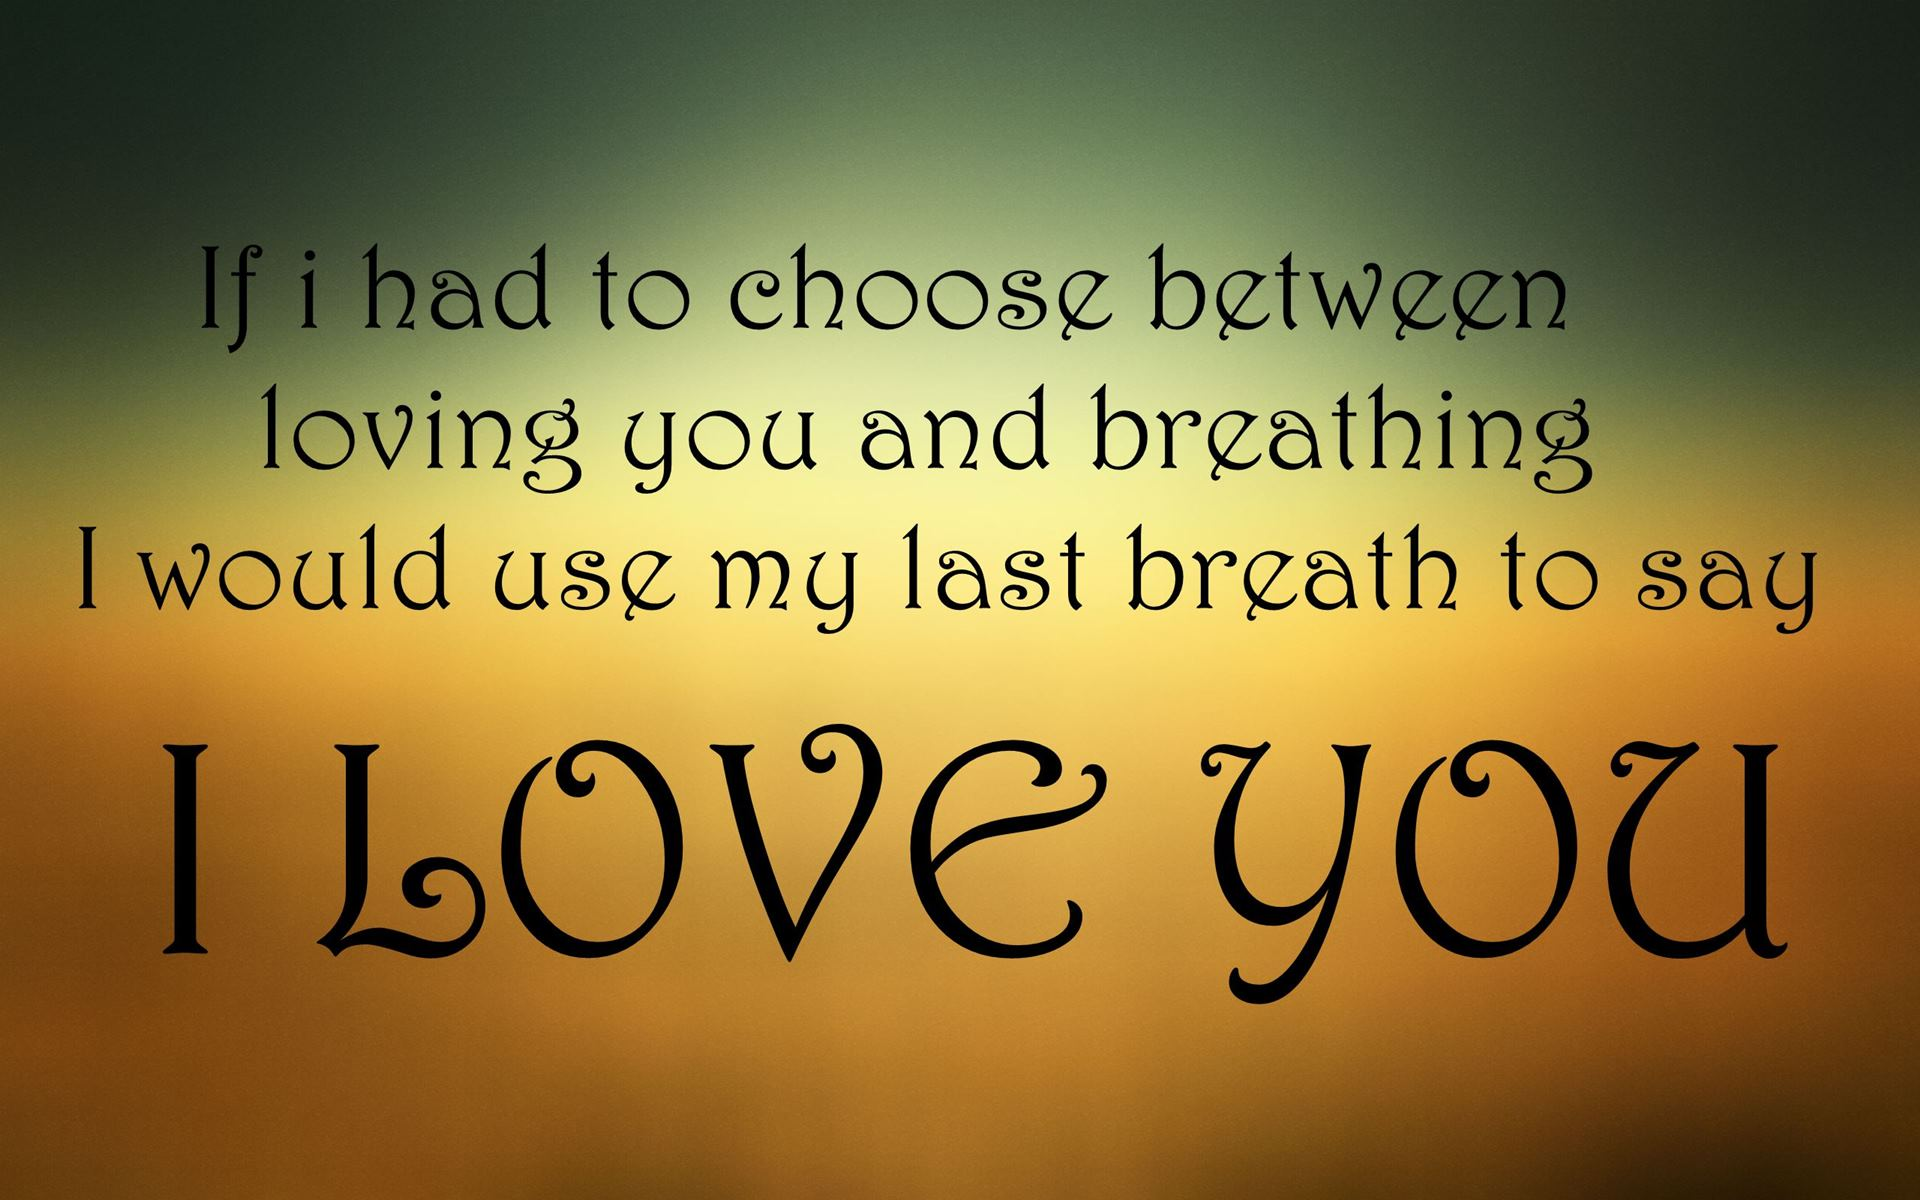 Love Quotes Wallpaper Full Screen : Quotes About Love Wallpapers, Pictures, Images